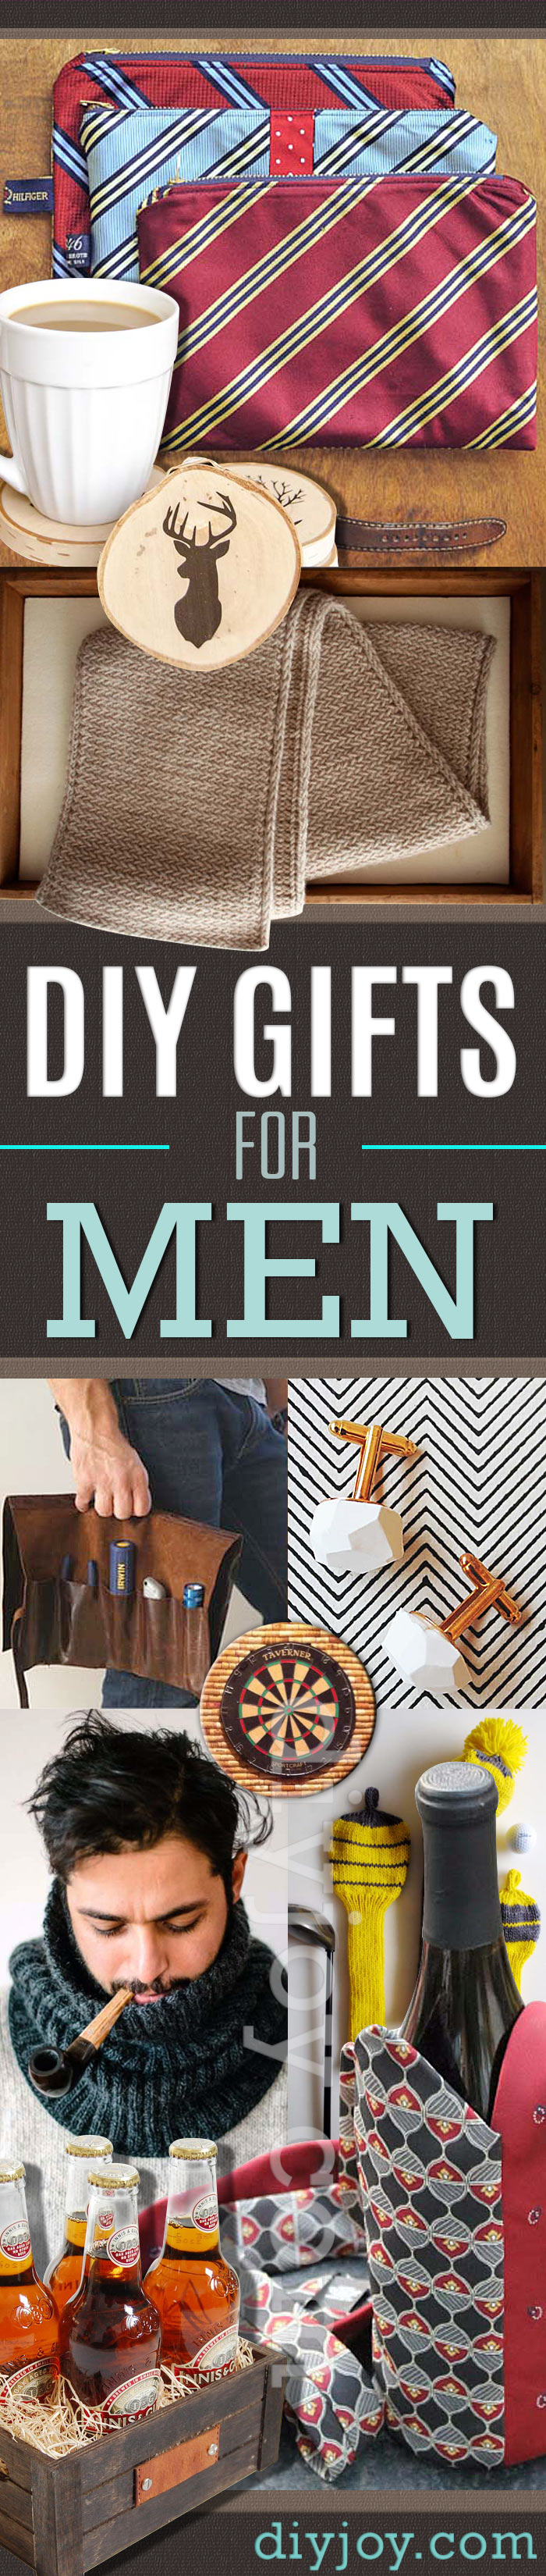 diy gifts for men pinterest ideas - DYI Gift Ideas for Guys - Homemade Christmas Presents for Him - DIY Xmas gifts ideas #diy #diygifts #men